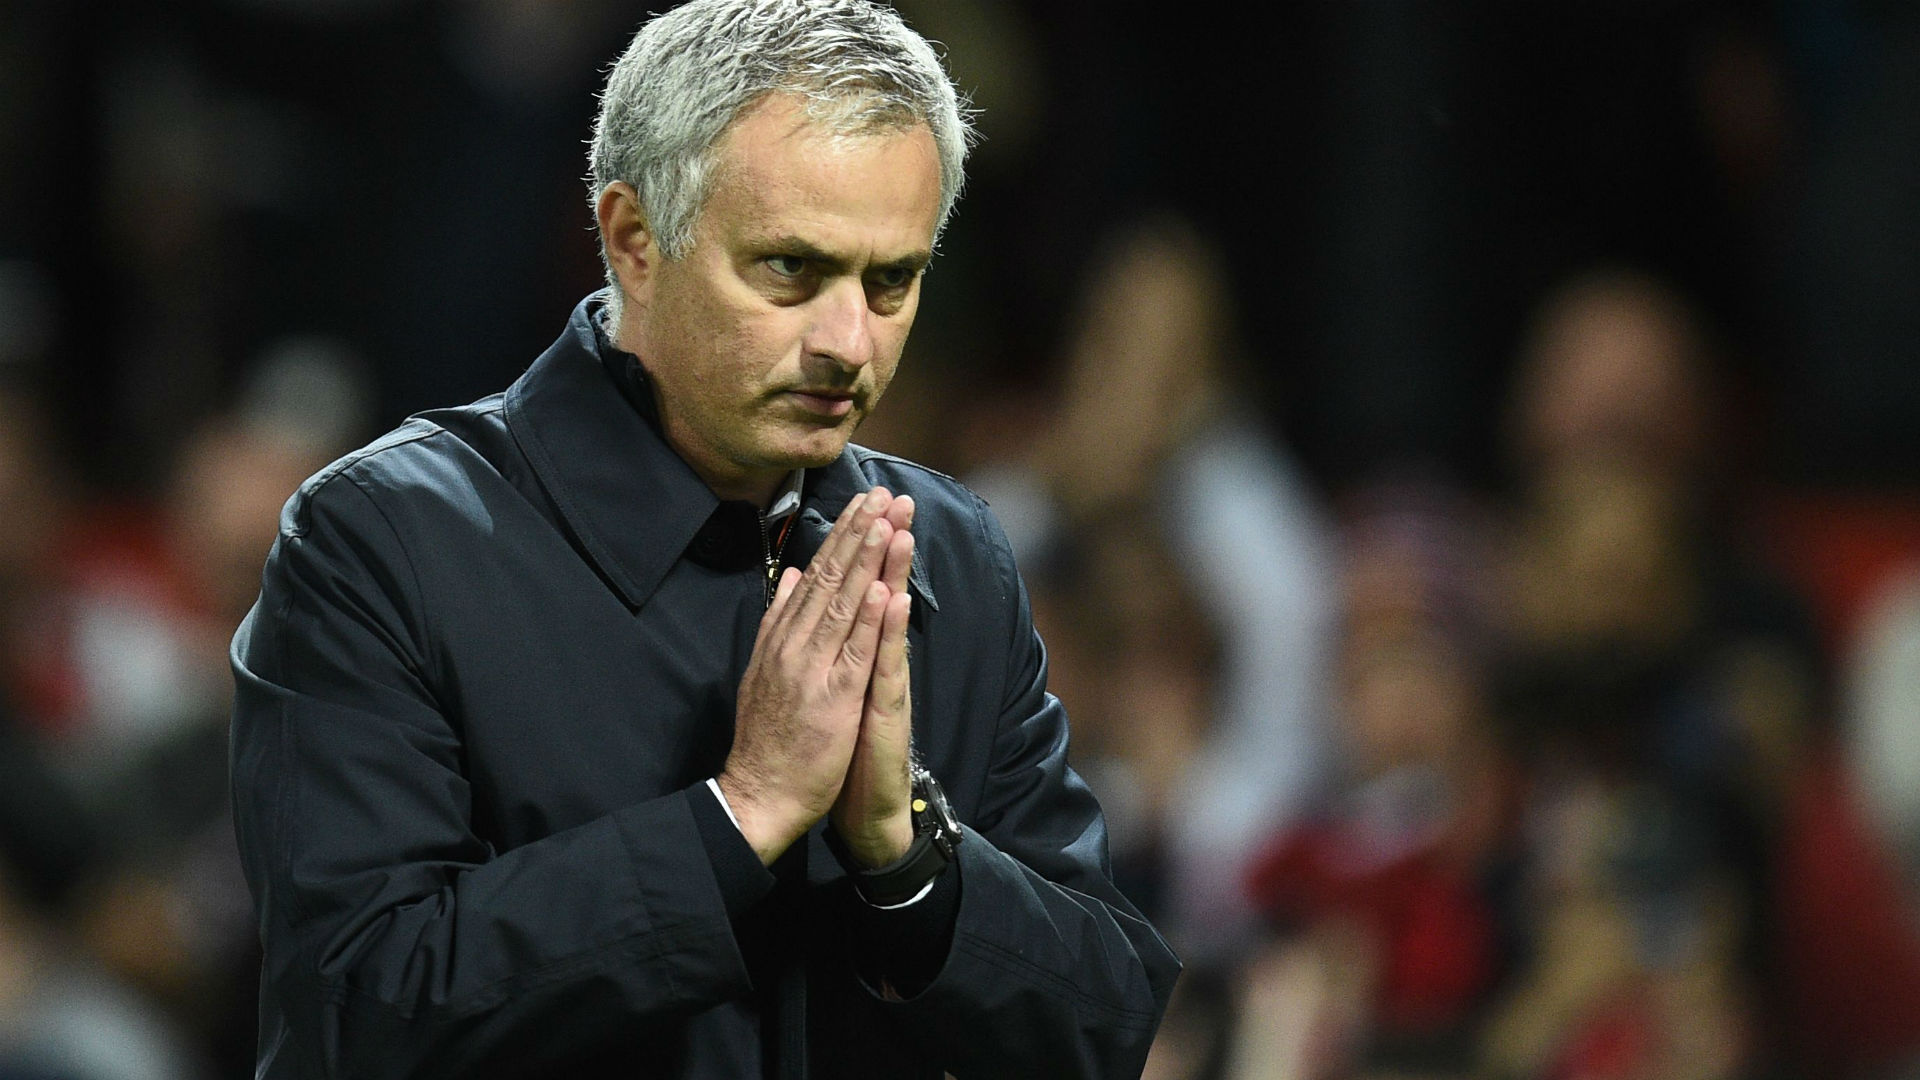 Mourinho gestures '4-0' to Man Utd fans in further apology for Chelsea disaster | Goal.com